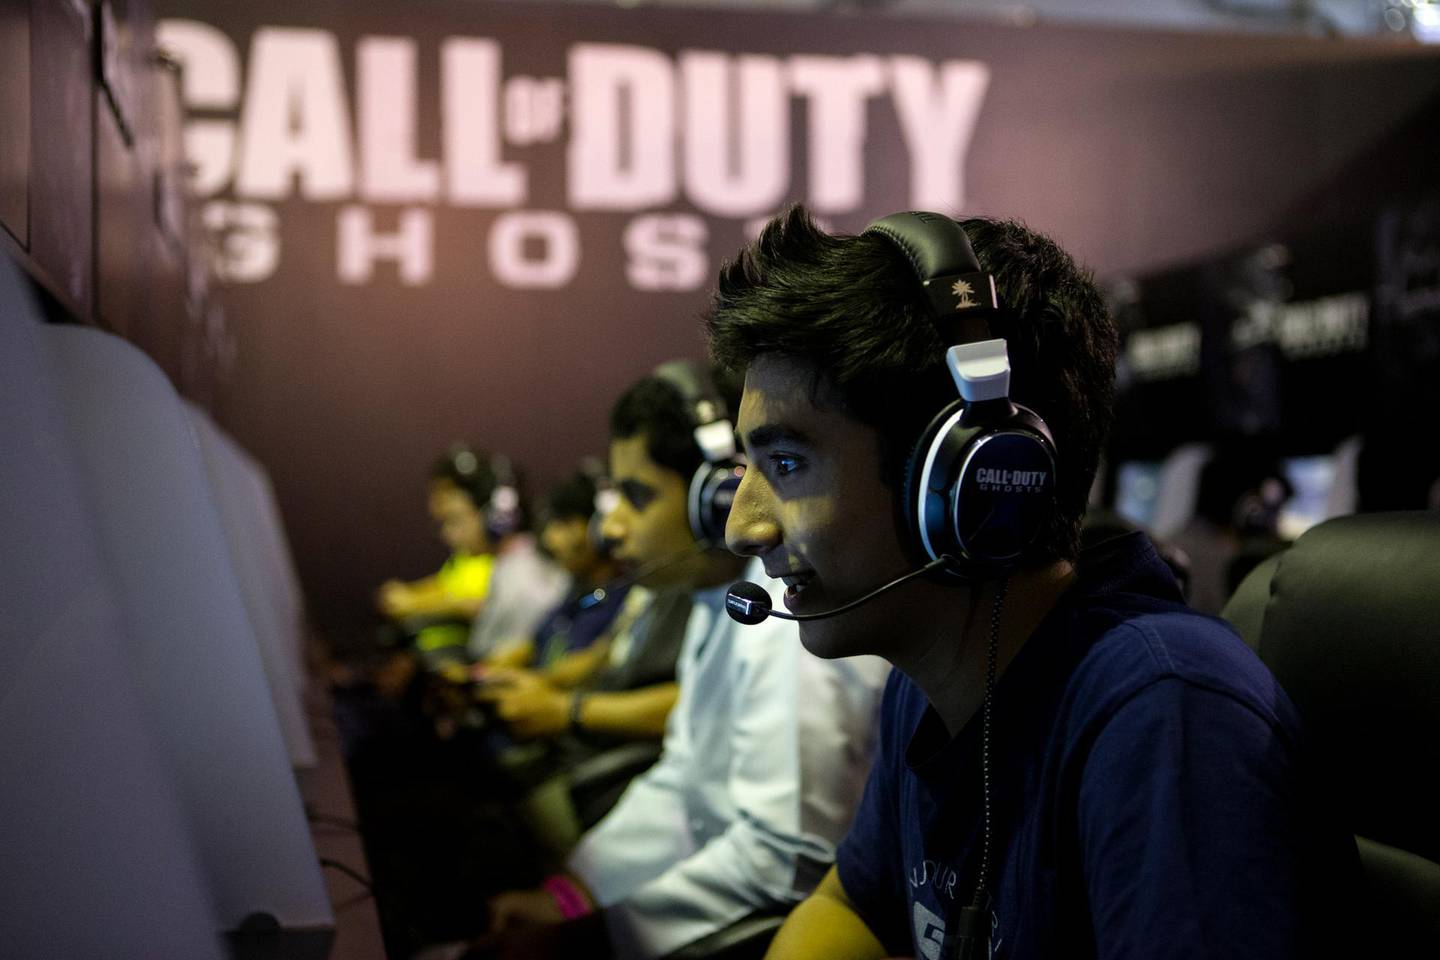 Dubai, United Arab Emirates, September 26, 2013:      Youngsters who waited up to three hours to try the new Call of Duty game play during Games 13 at the Dubai International Convention and Exhibition Centre in Dubai on September 26, 2013. Christopher Pike / The NationalReporter: Mohammed AlKhanSection: News *** Local Caption ***  CP0926-games13-009.JPG